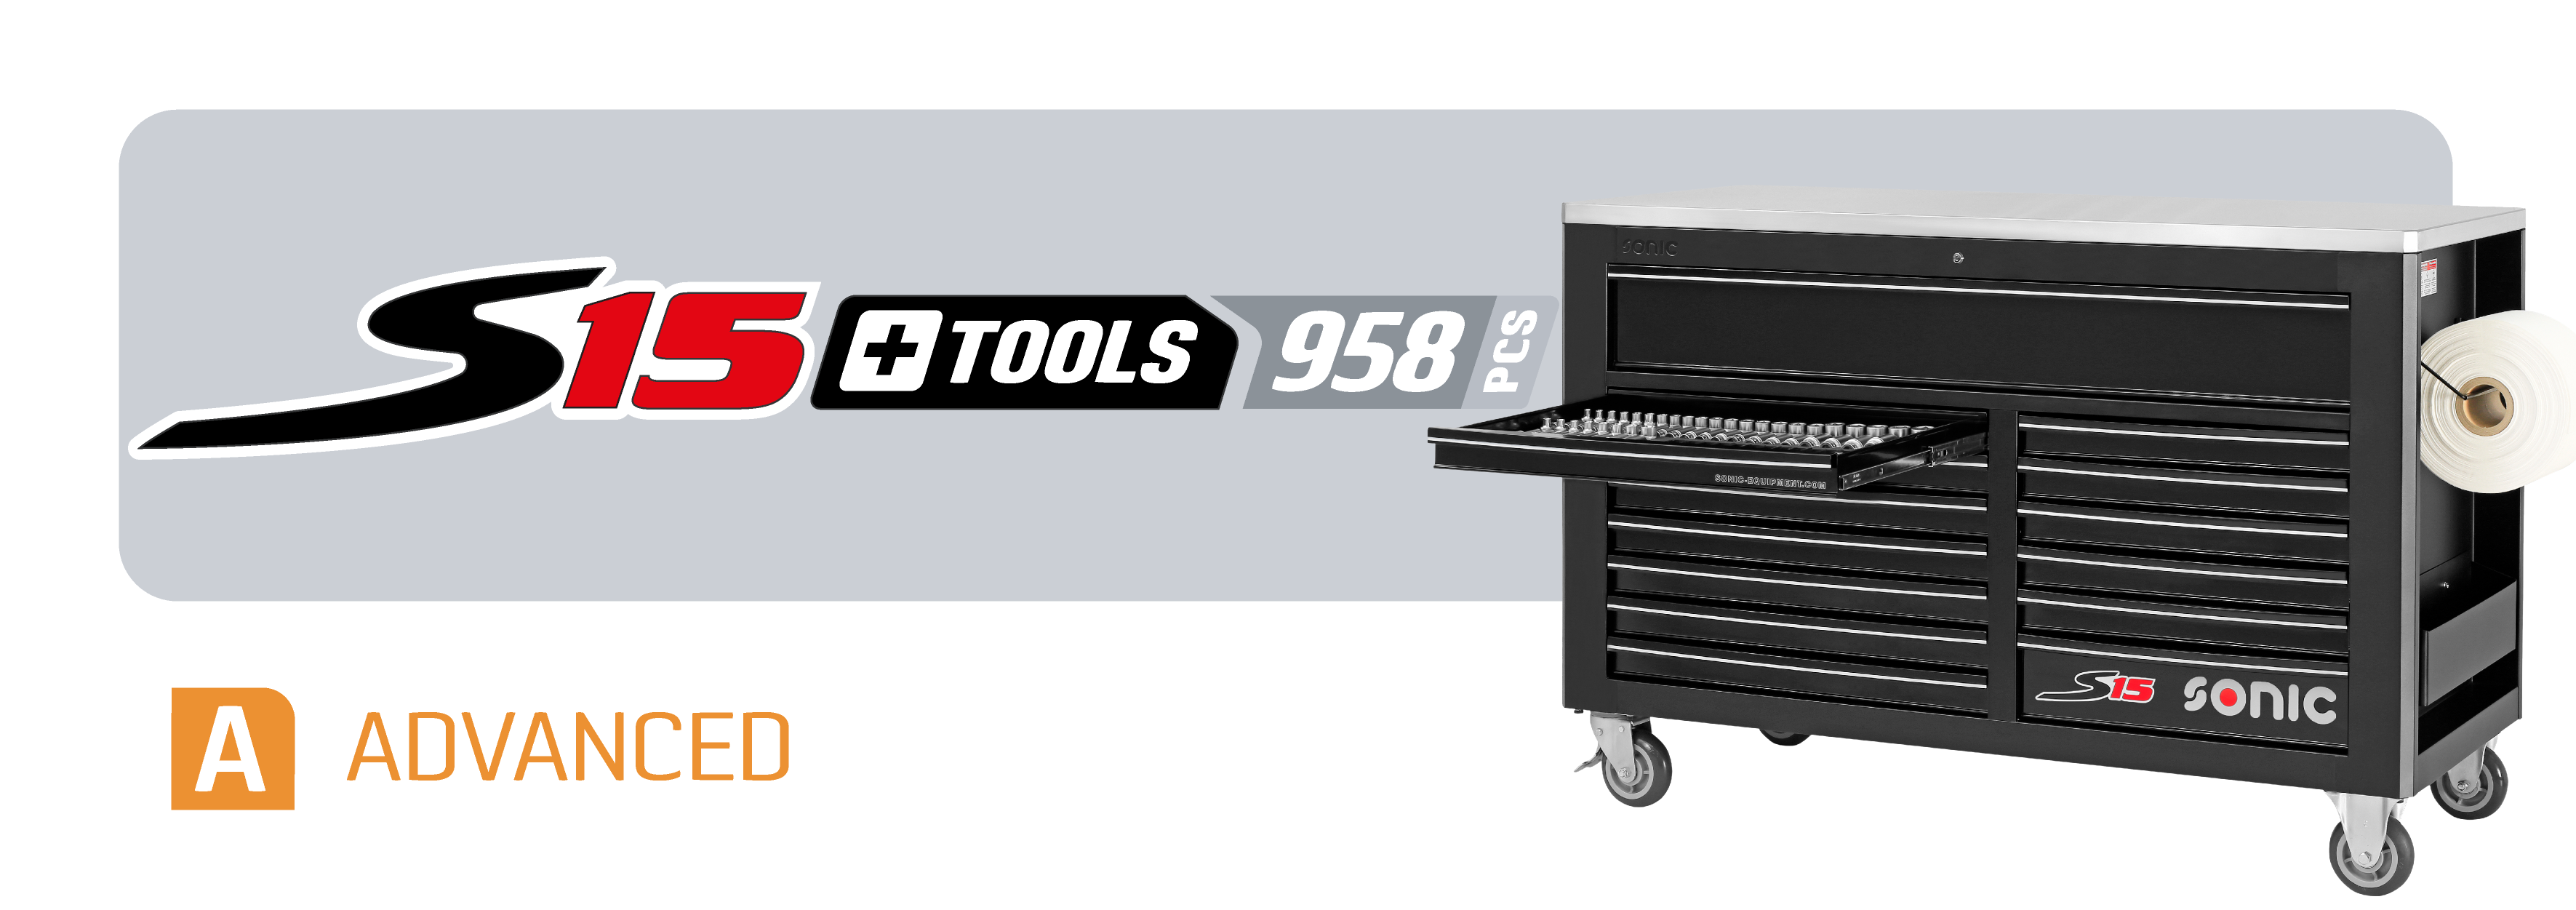 S15 toolbox with tools